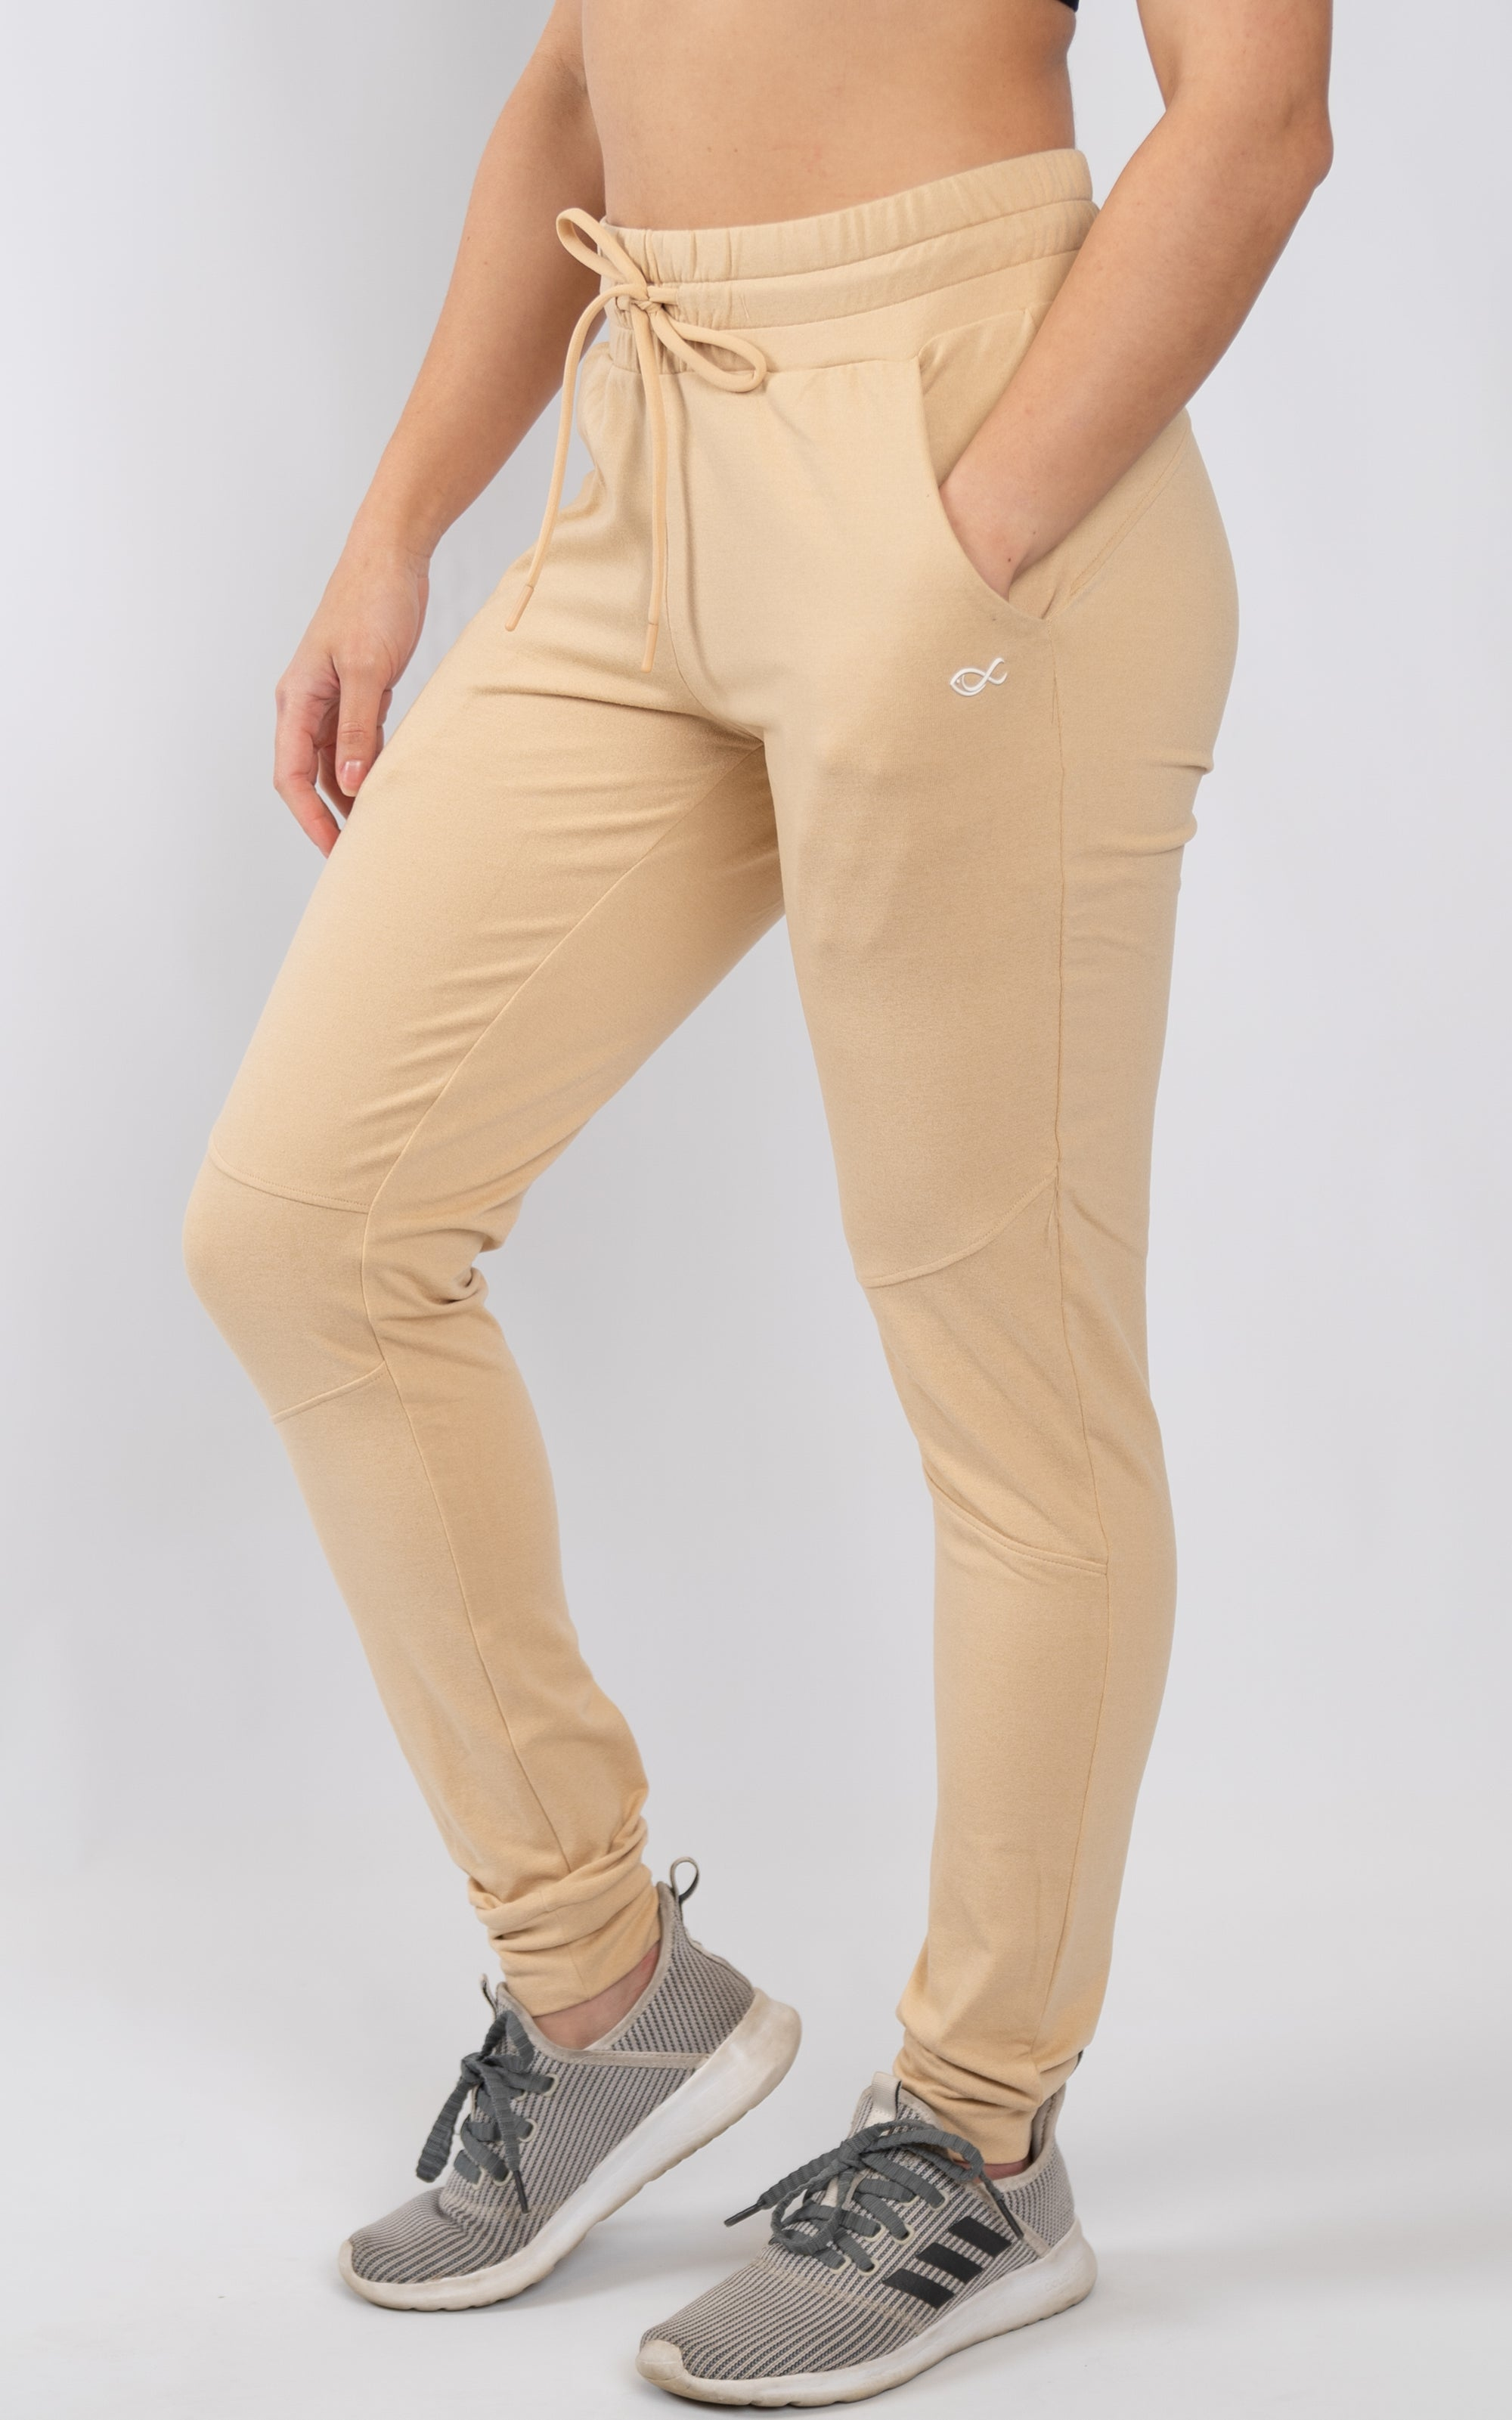 Women's Premium Joggers in Almond Buff